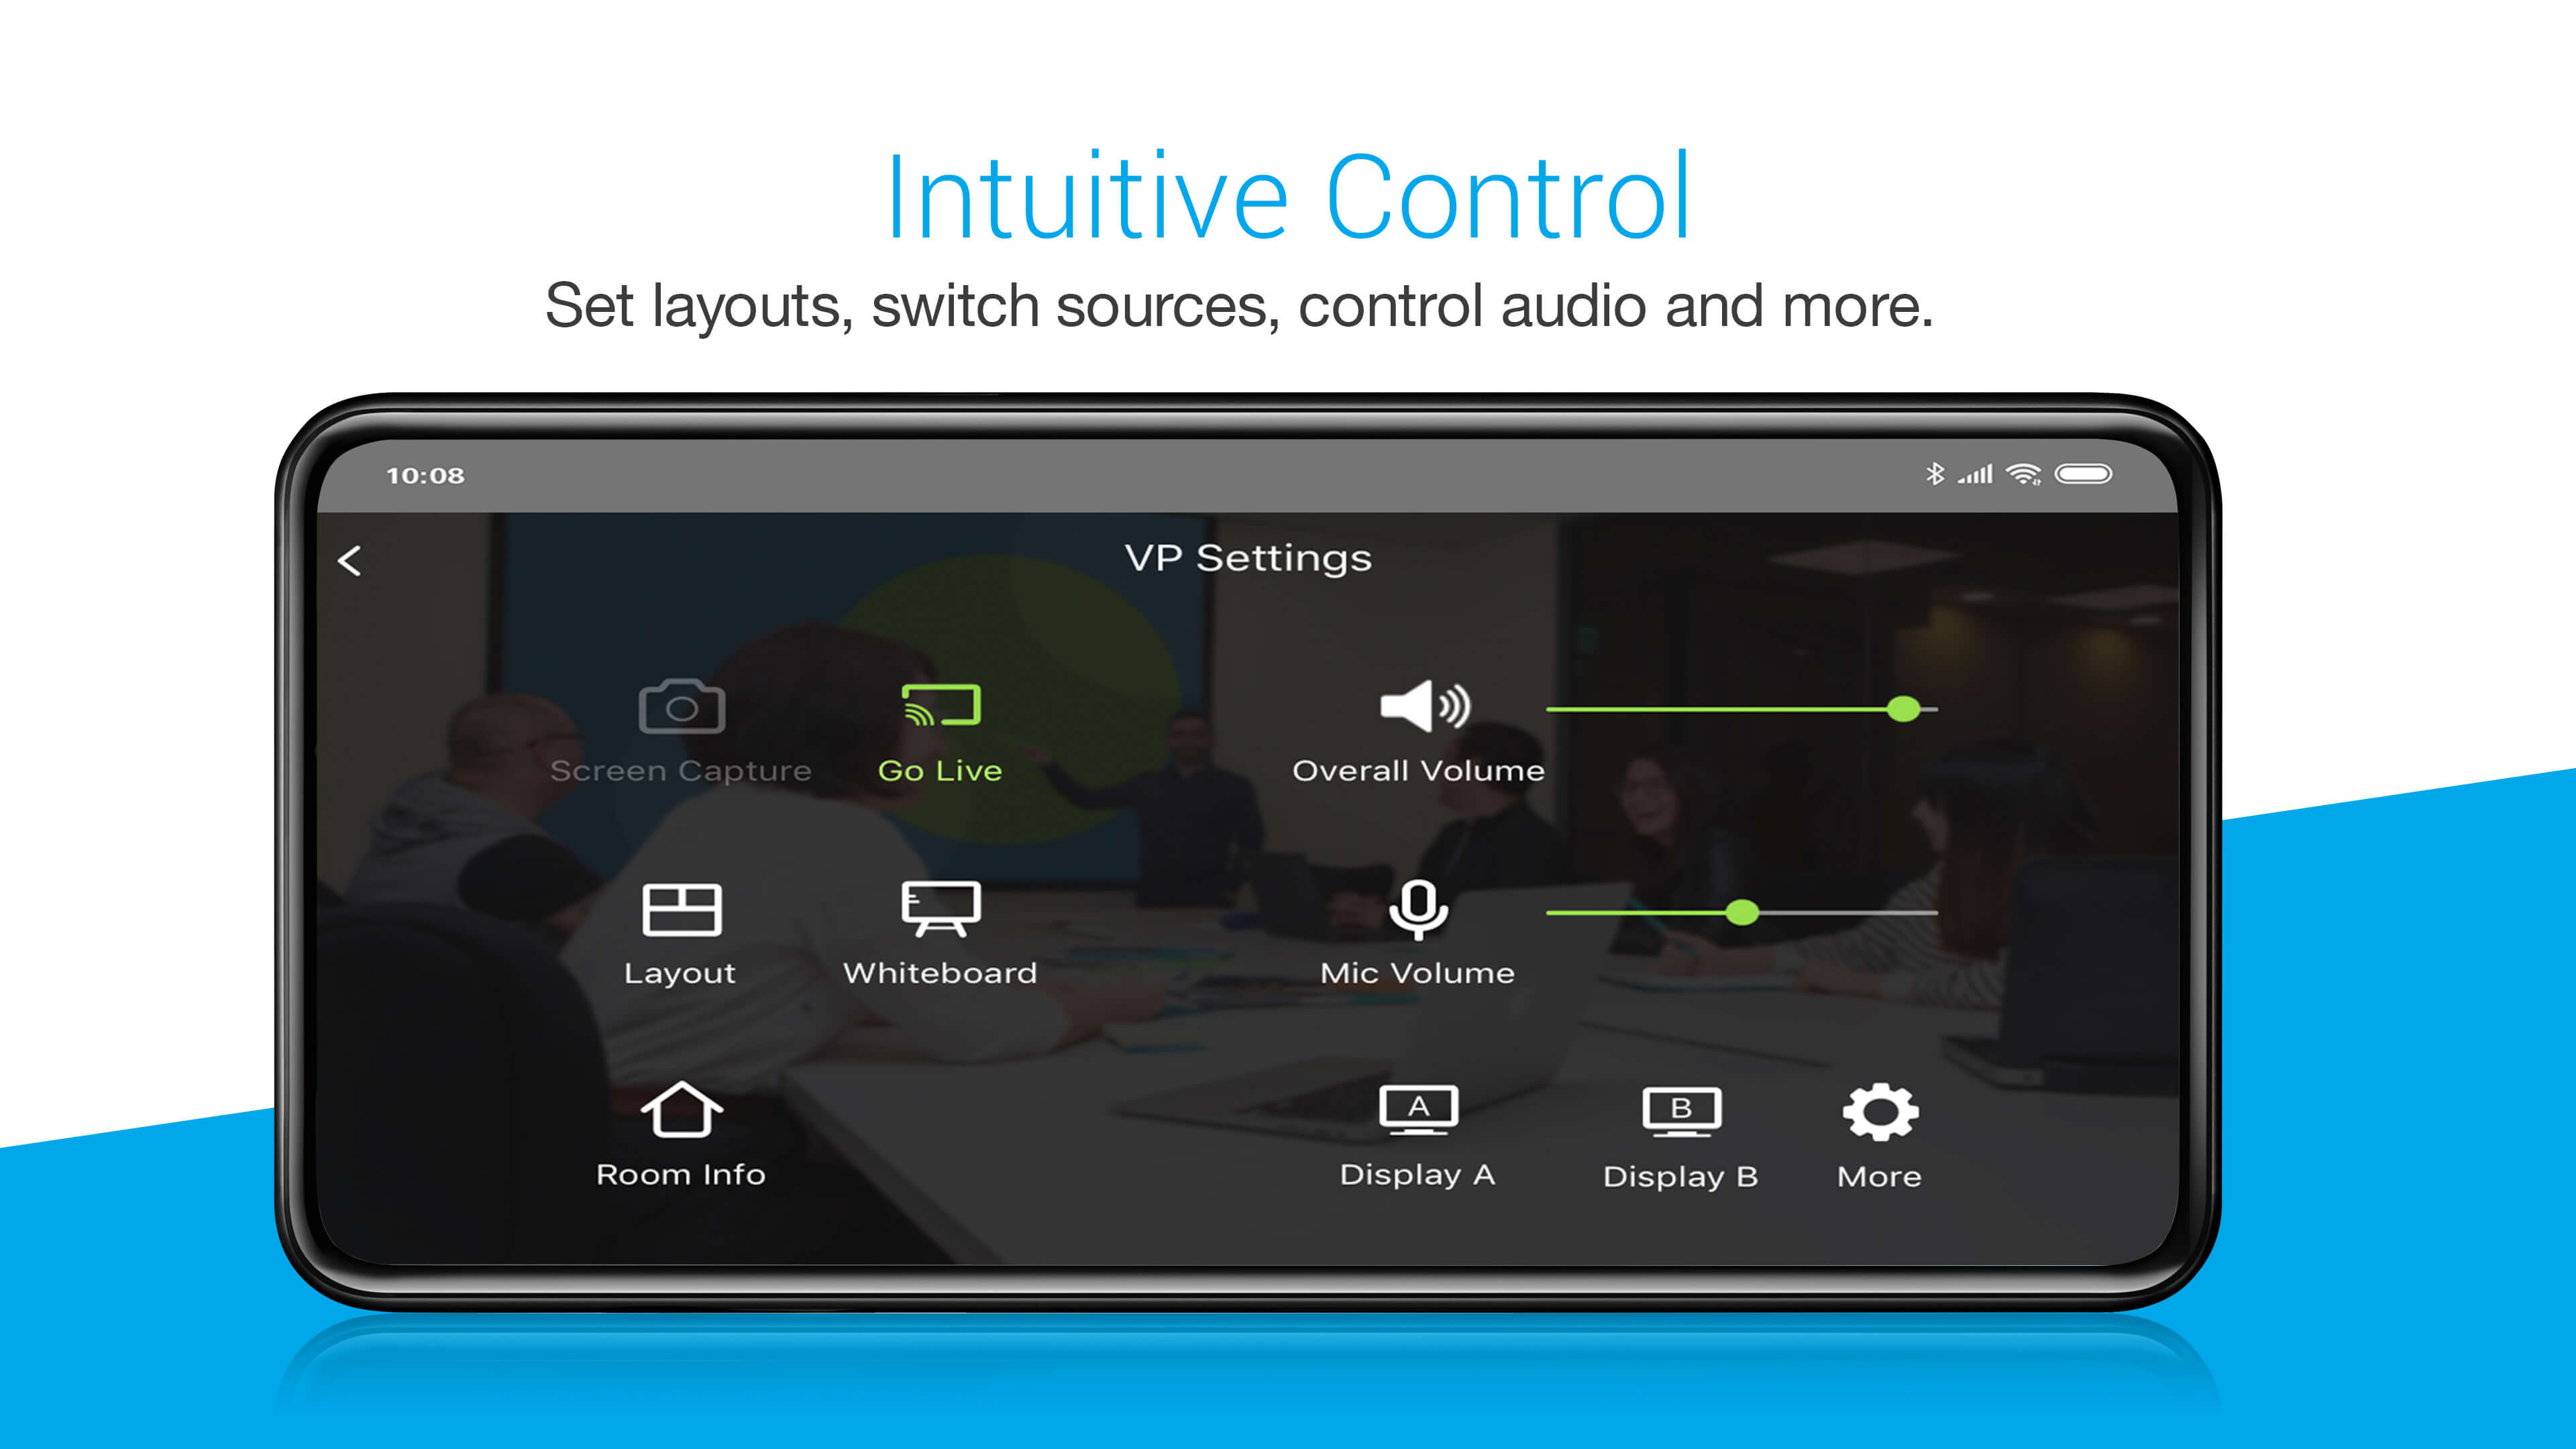 Collaborate and Control Meeting Presentations with your mobile device-6